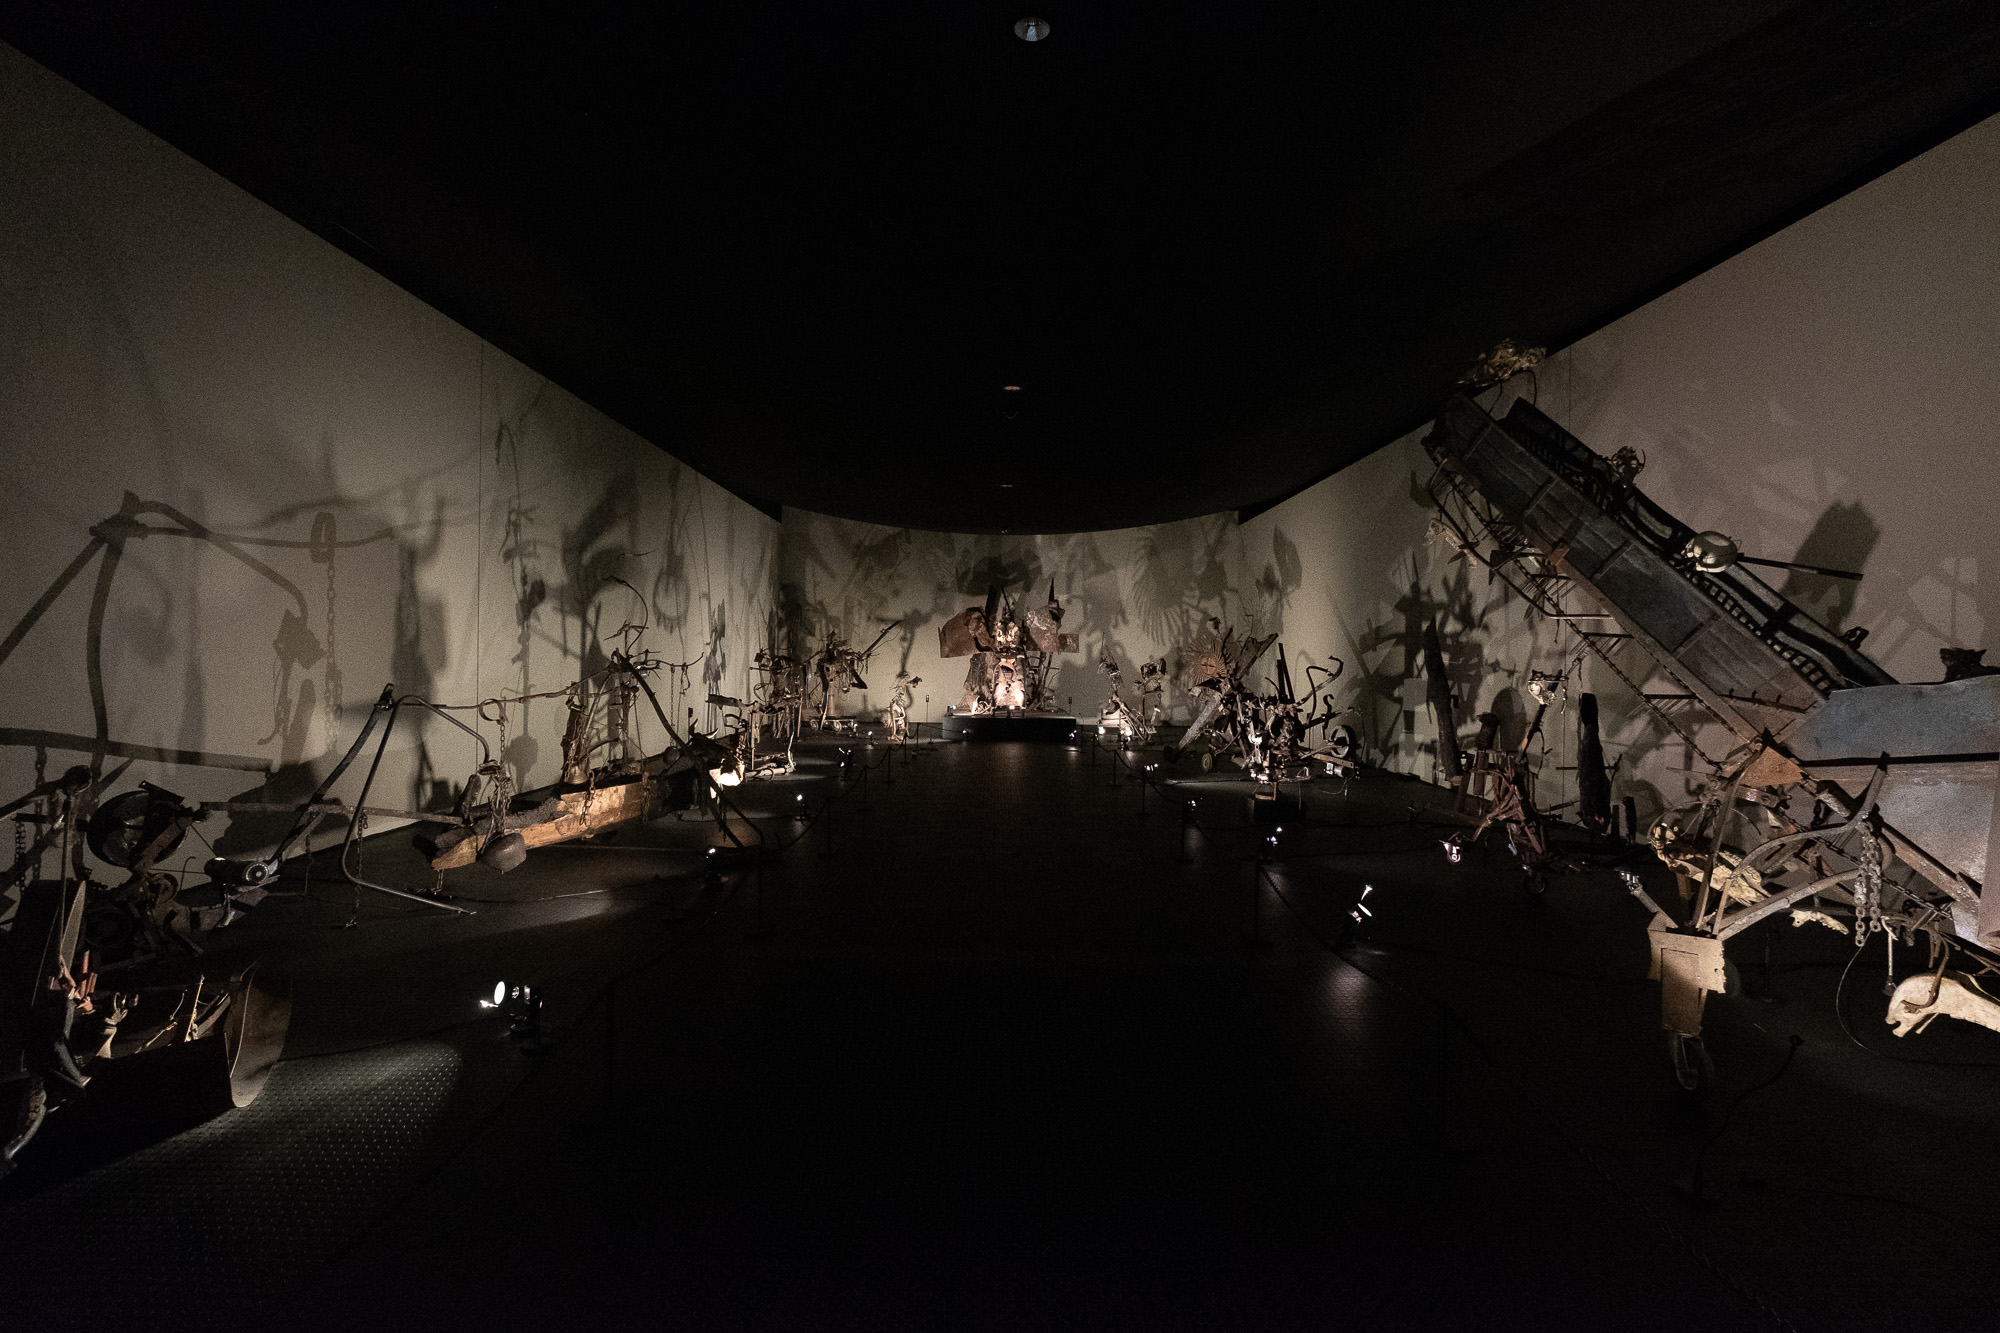 A dark room filled with many eery metallic sculptures by Jean Tinguely.